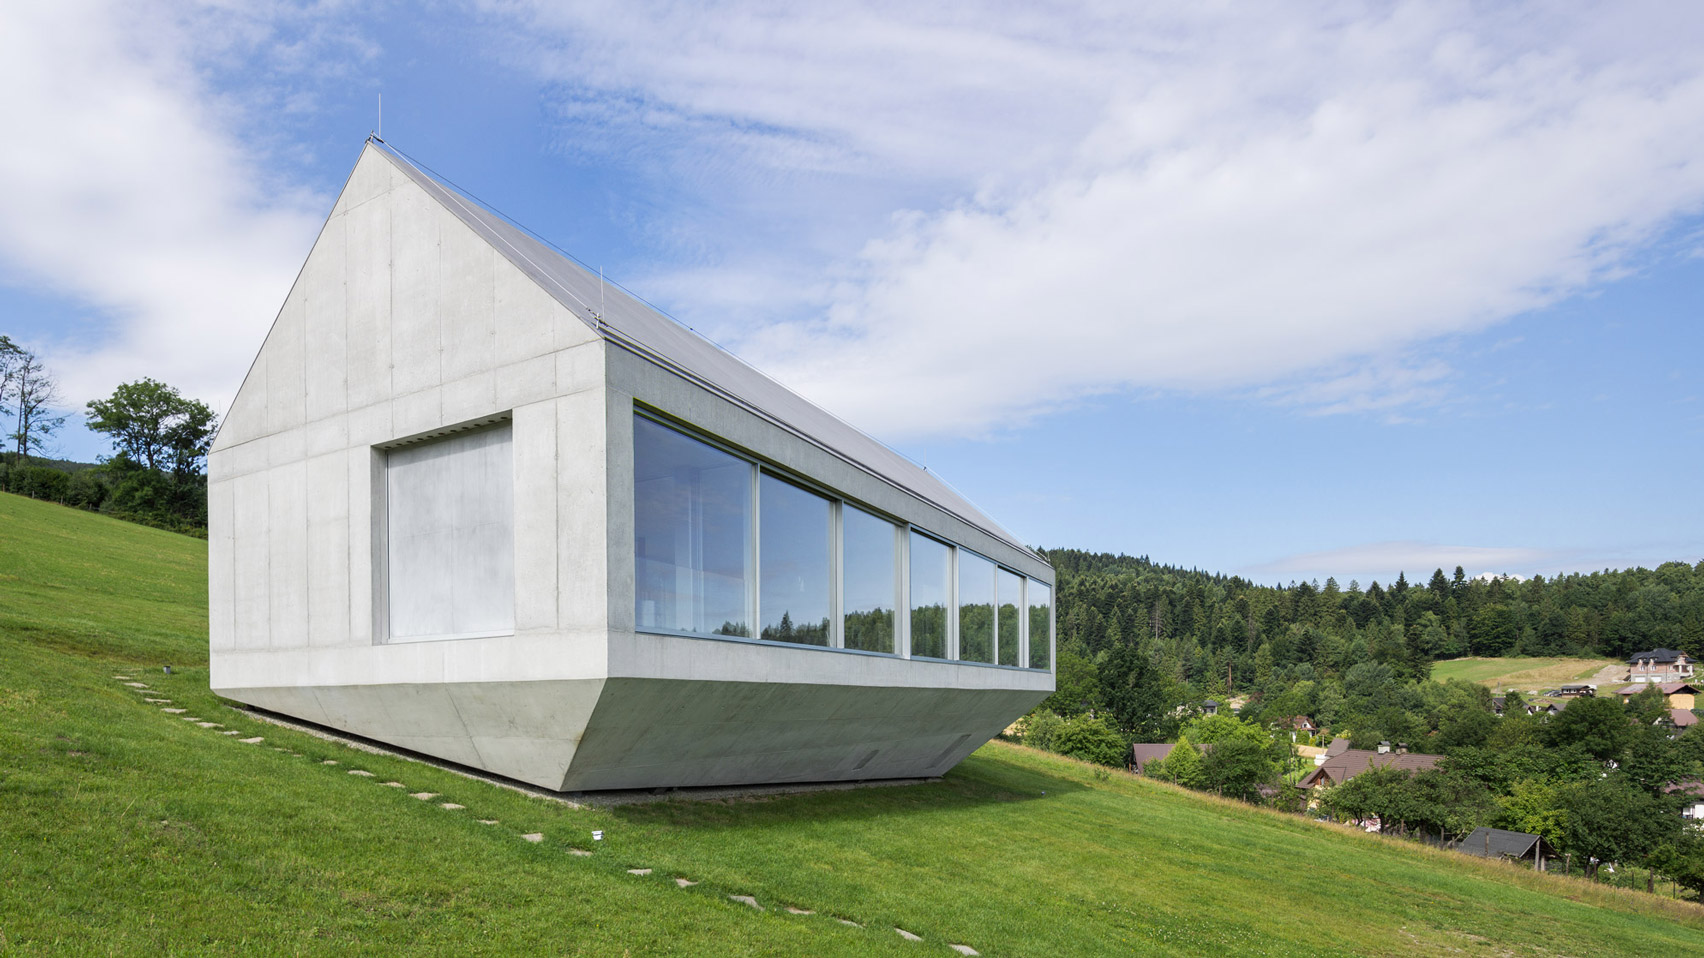 This single storey house was built on a slope to maximize the views